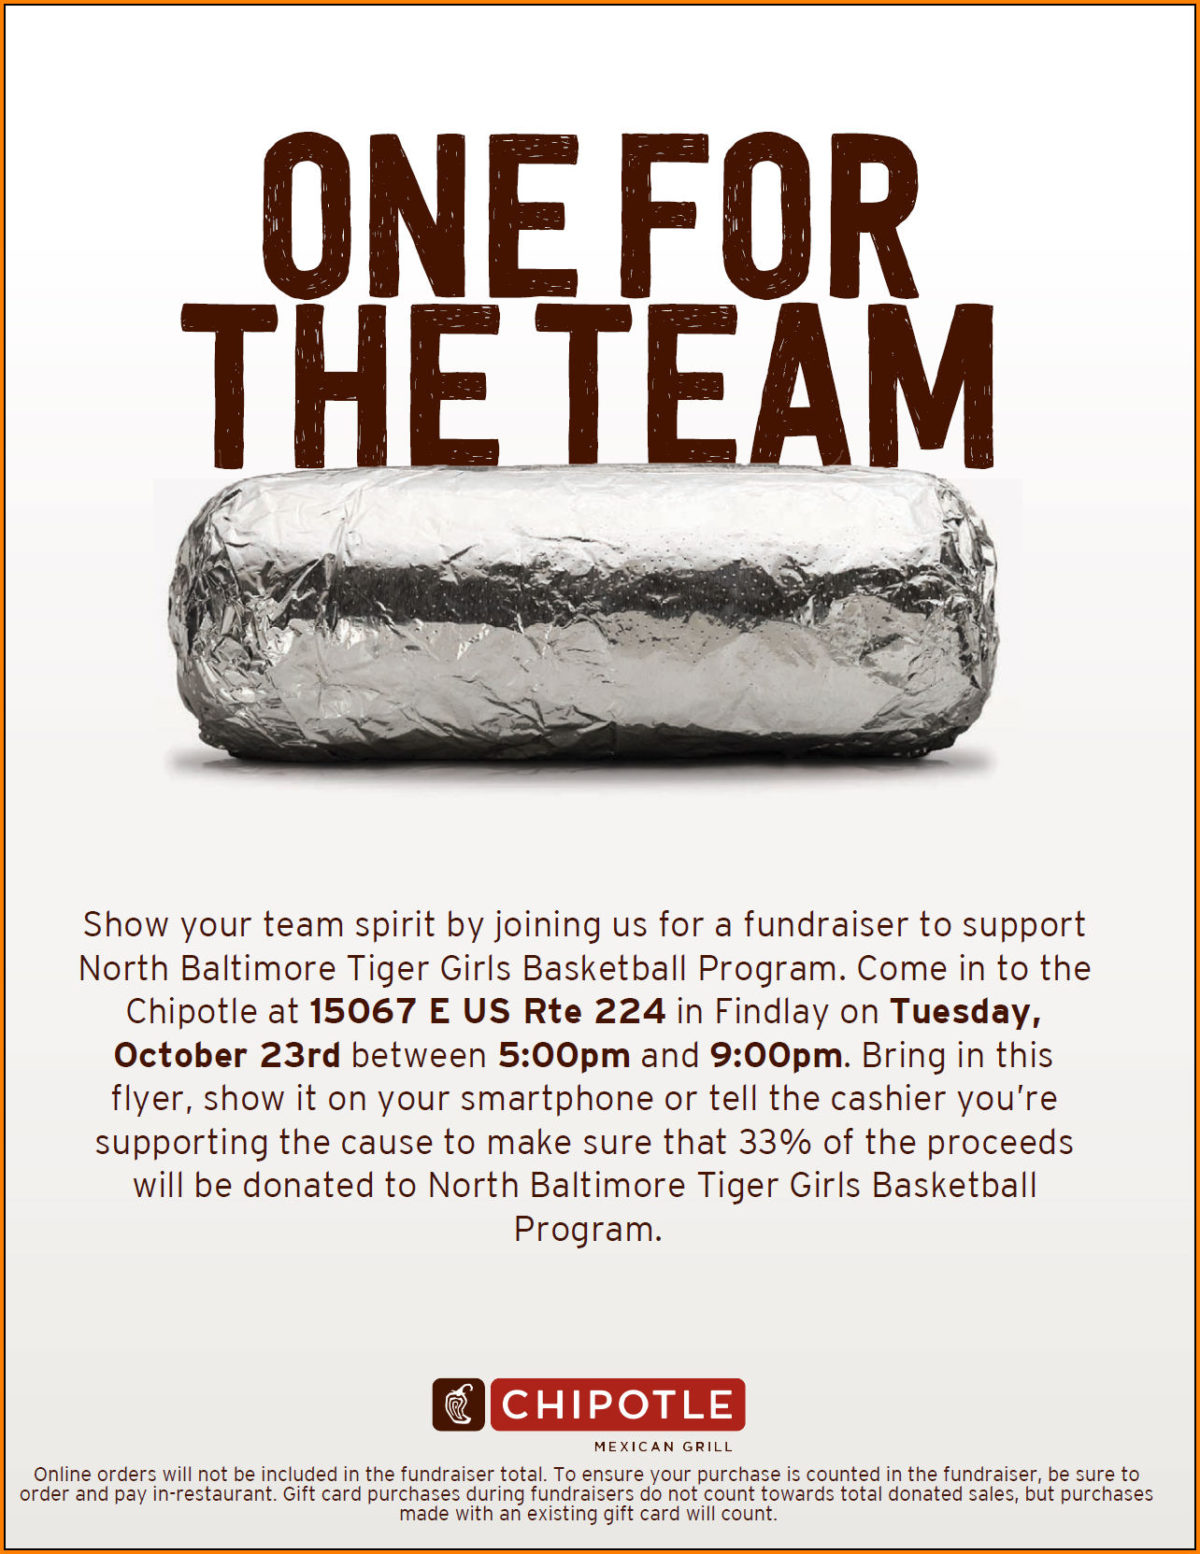 Upcoming Fundraiser for Tiger Girls Basketball Program………….